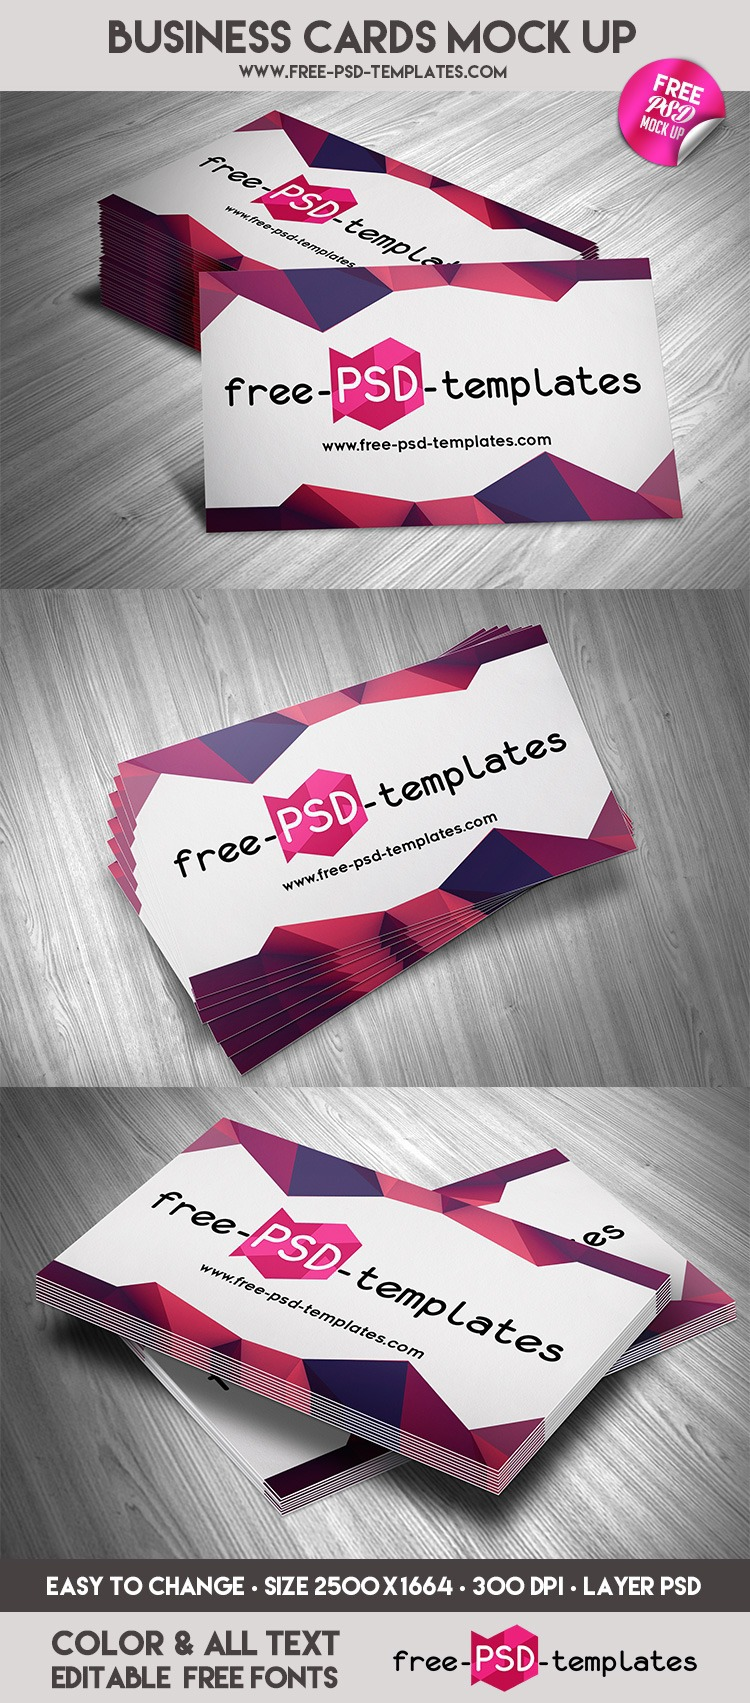 Free business cards mock up in psd on behance very beautiful and attractive freebie free business cards mock up in psd is waiting for its new owner download this mockup easily and make any changes reheart Gallery